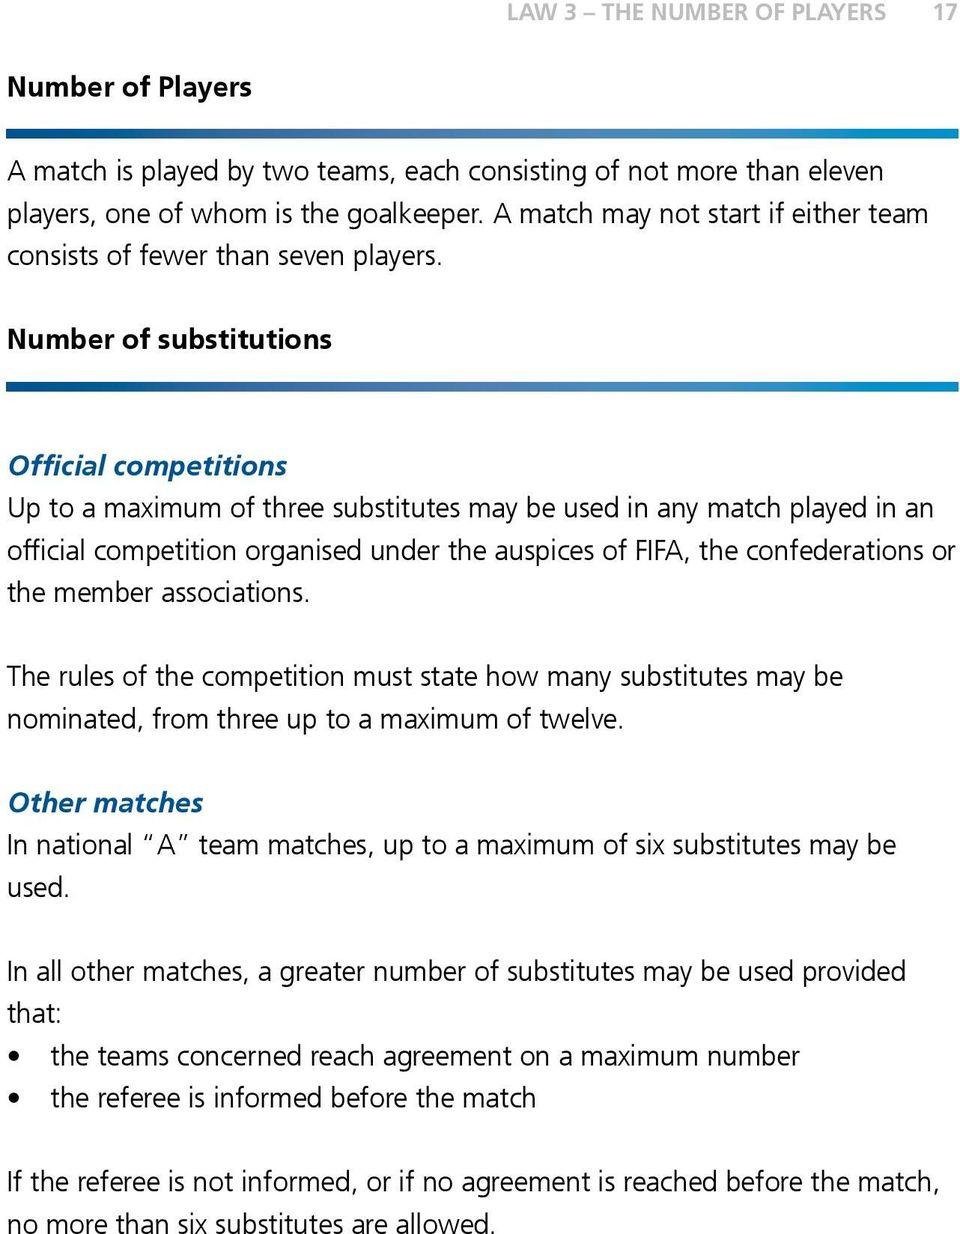 Number of substitutions Official competitions Up to a maximum of three substitutes may be used in any match played in an official competition organised under the auspices of FIFA, the confederations